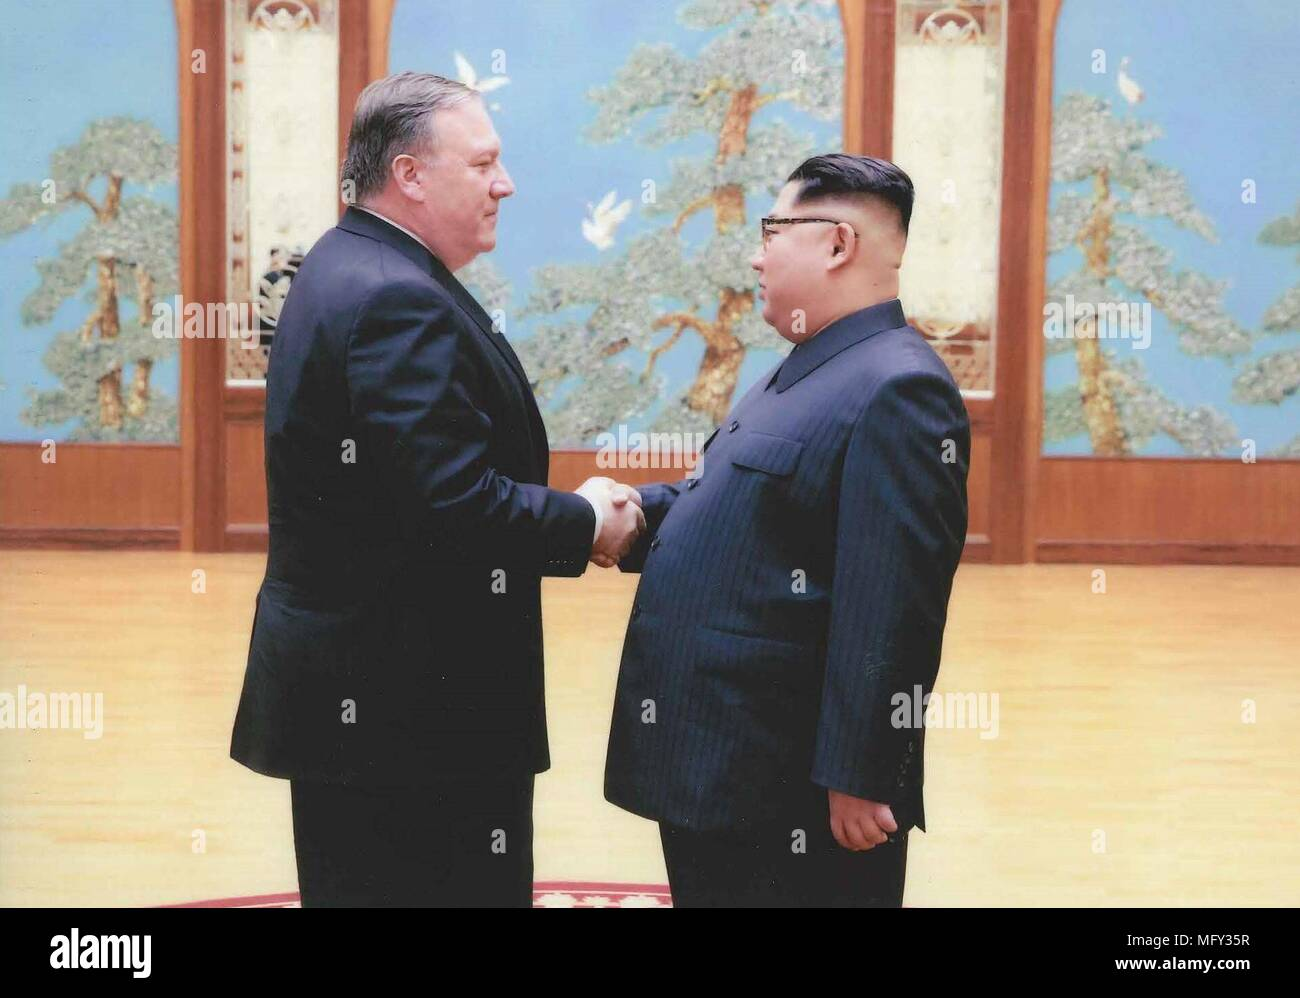 The White House released pictures April 27, 2018 showing CIA Director Mike Pompeo, left, shaking hands with North Korean leader Kim Jong Un during a secret meeting over Easter weekend in April 2018 in Pyongyang, North Korea. Pompeo was the most senior U.S. official to meet a North Korean leader since 2000. - Stock Image